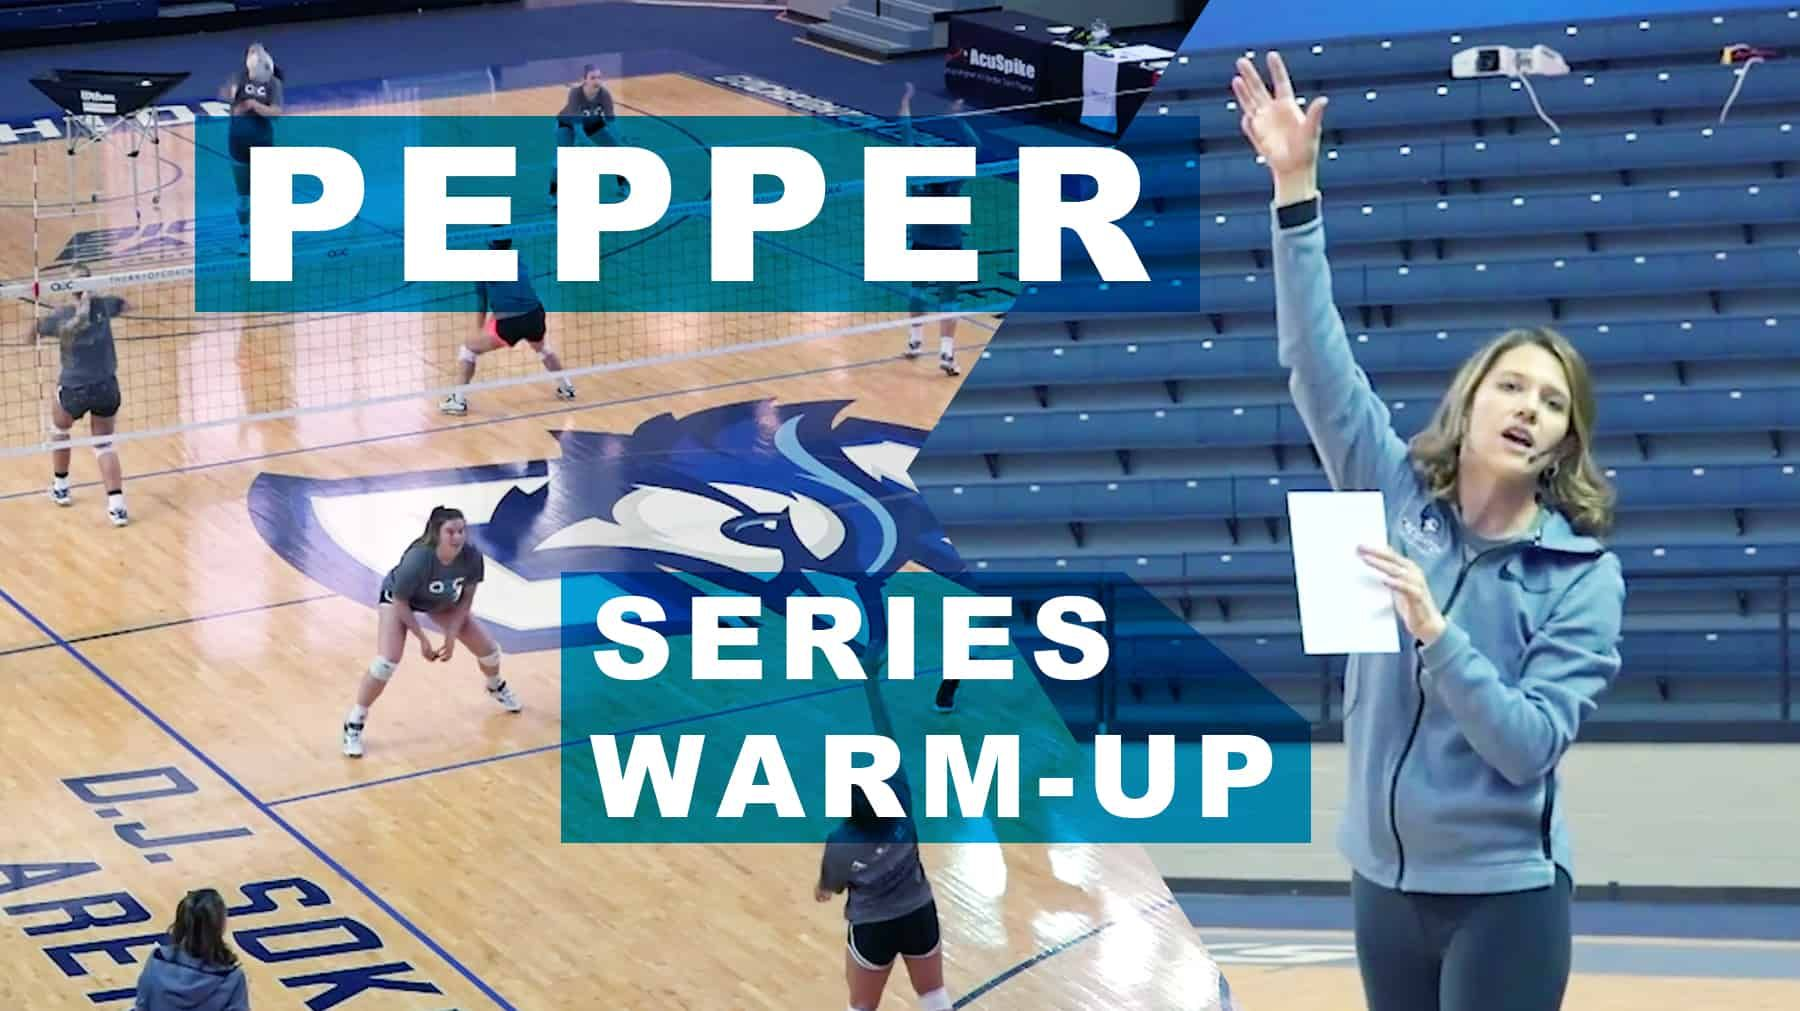 New Pepper Series Warm Up The Art Of Coaching Volleyball Coaching Volleyball Workout Warm Up Warmup